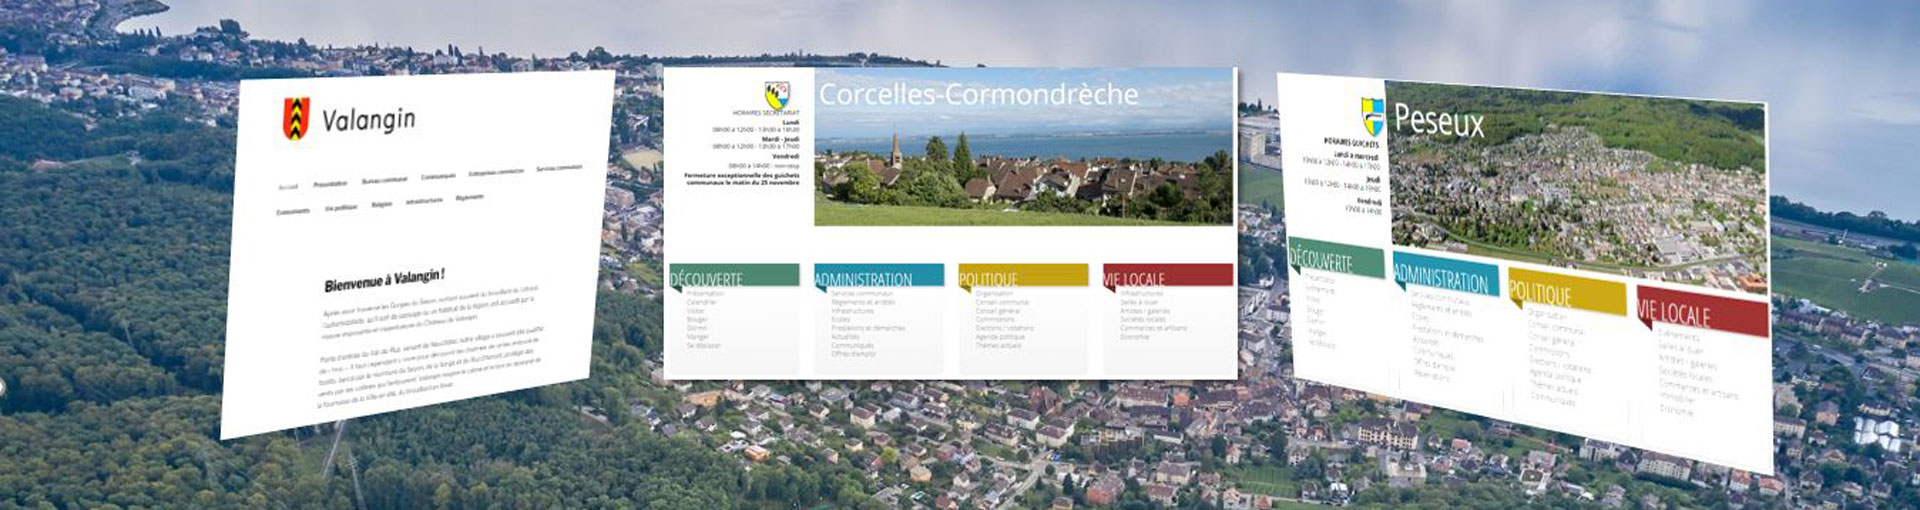 Sites anciennes communes